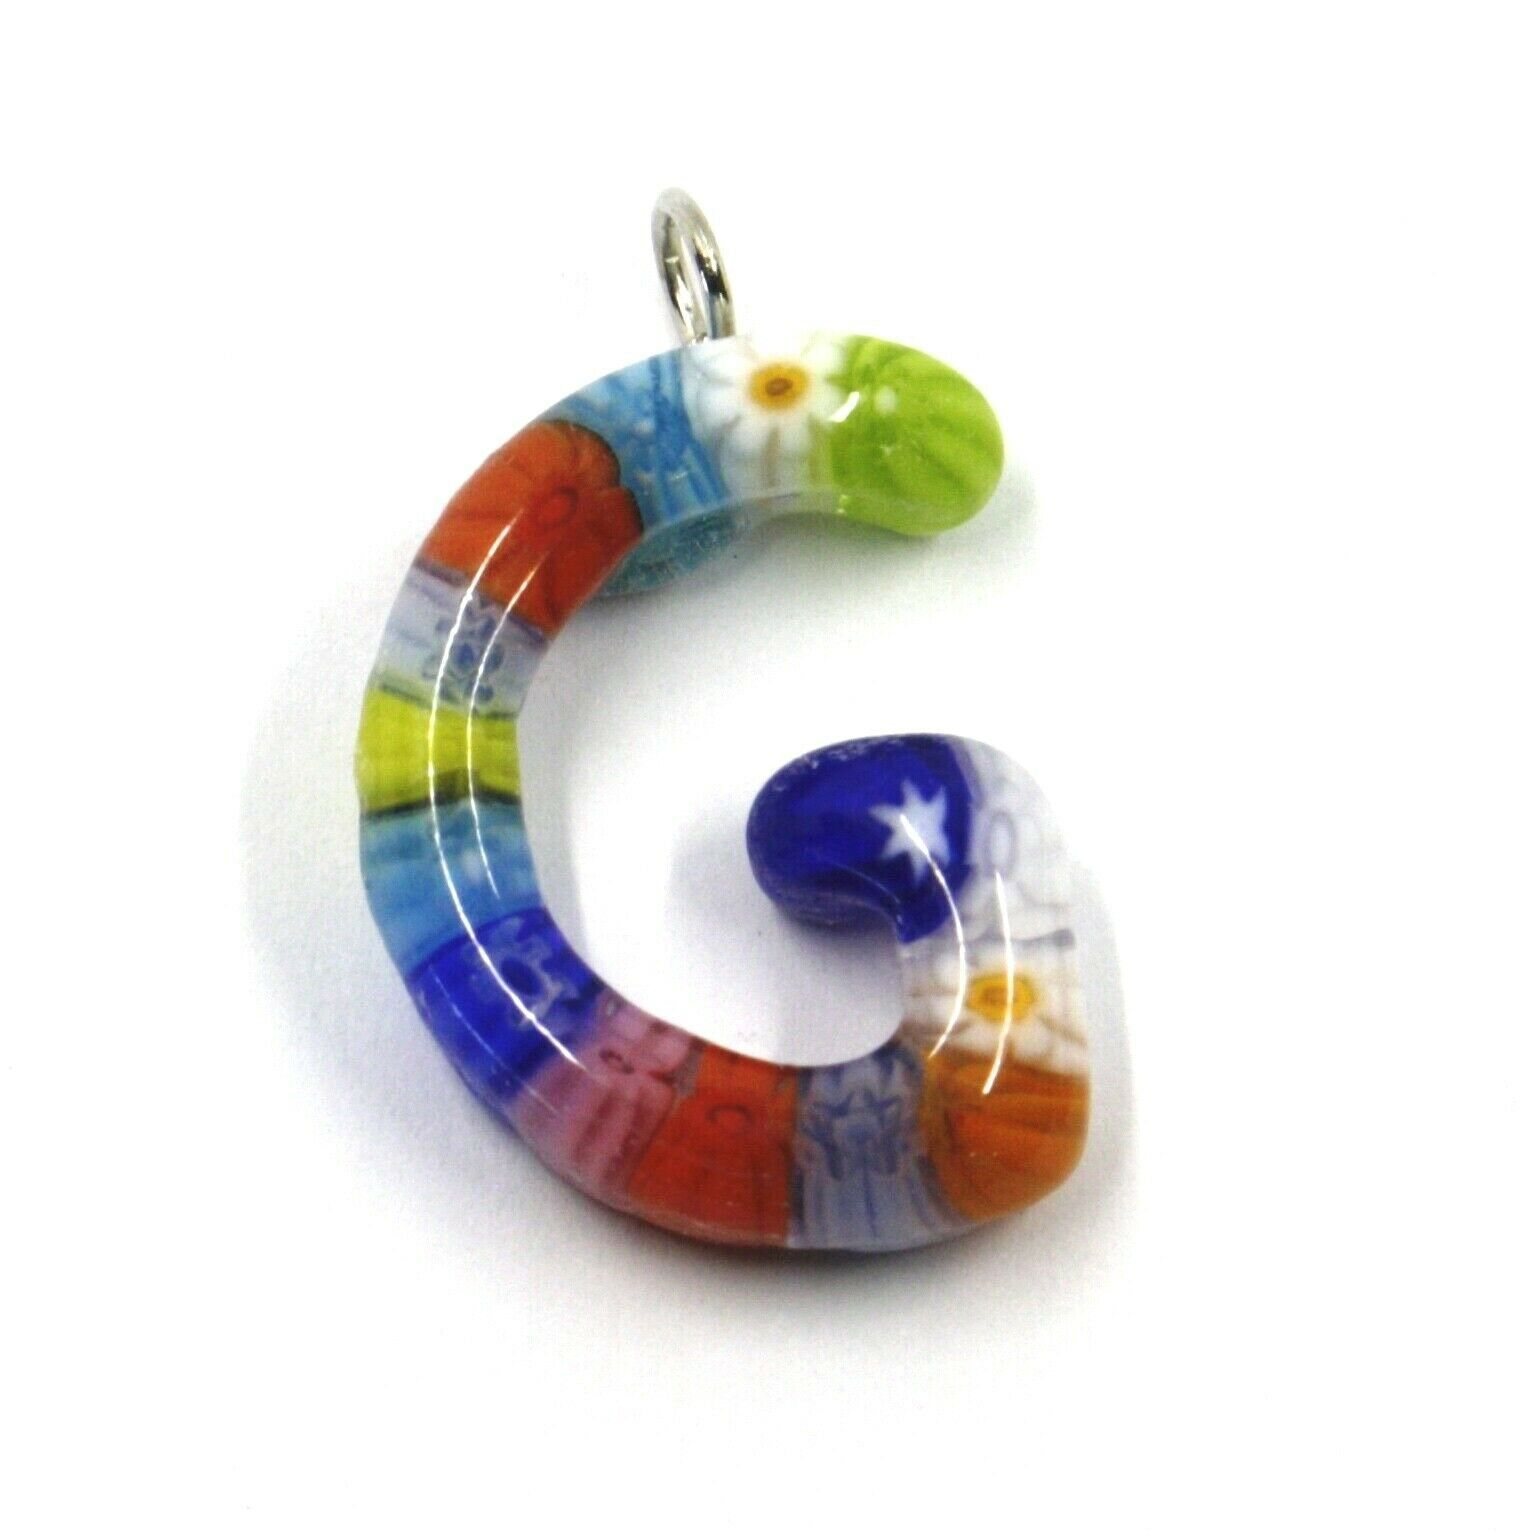 "LETTER G PENDANT MURANO GLASS MULTI COLOR MURRINE 2.5cm 1"" INITIAL MADE IN ITALY"